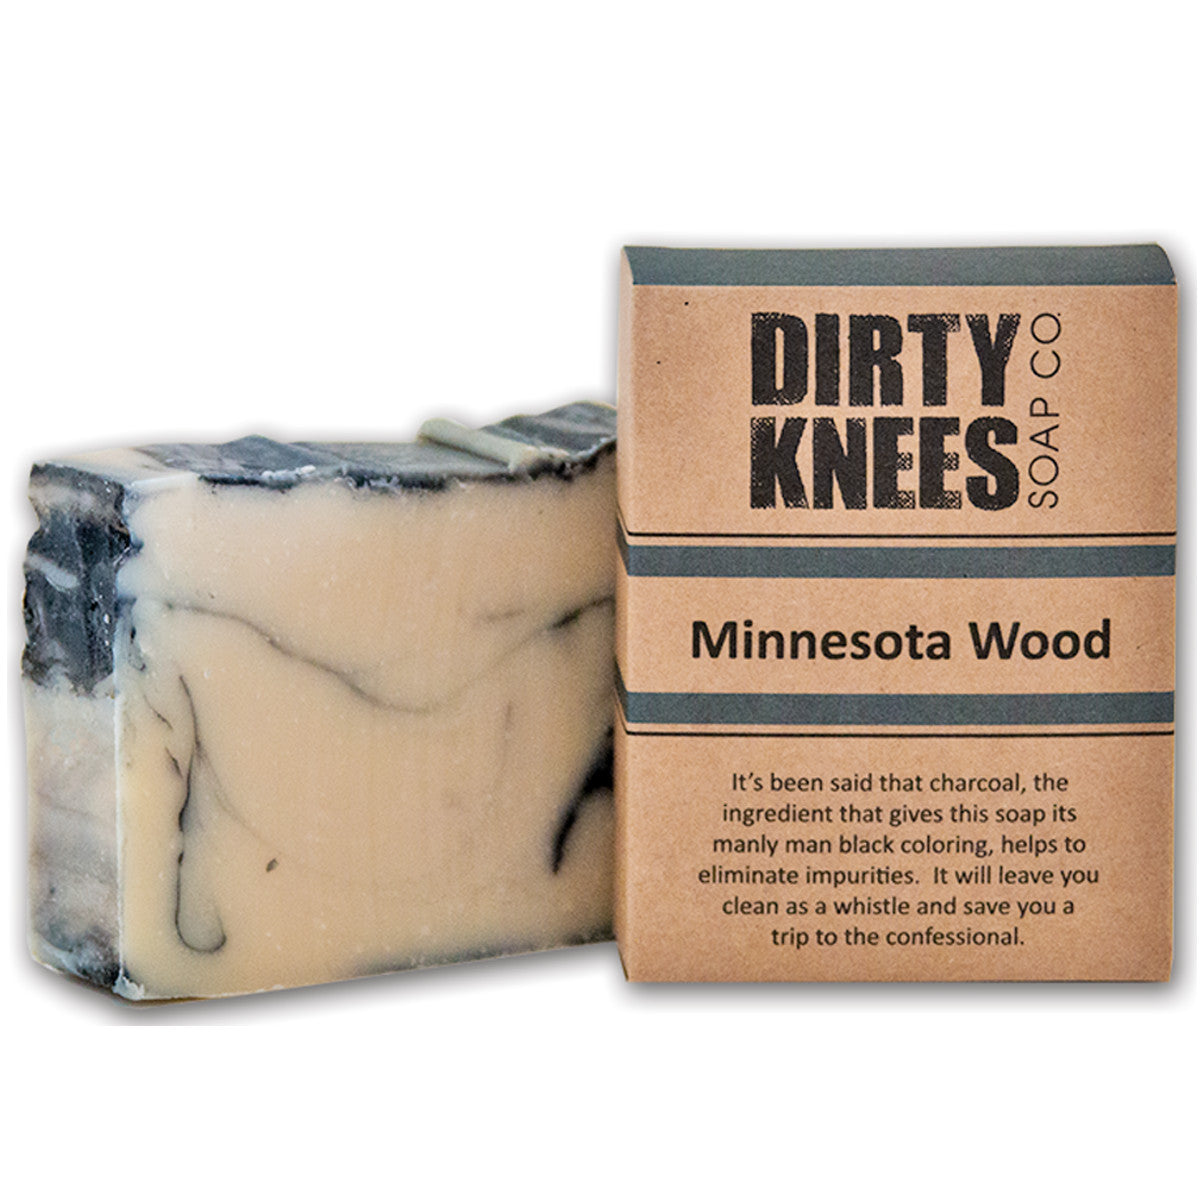 Minnesota Wood Bar Soap - Dirty Knees Soap Co., LLC